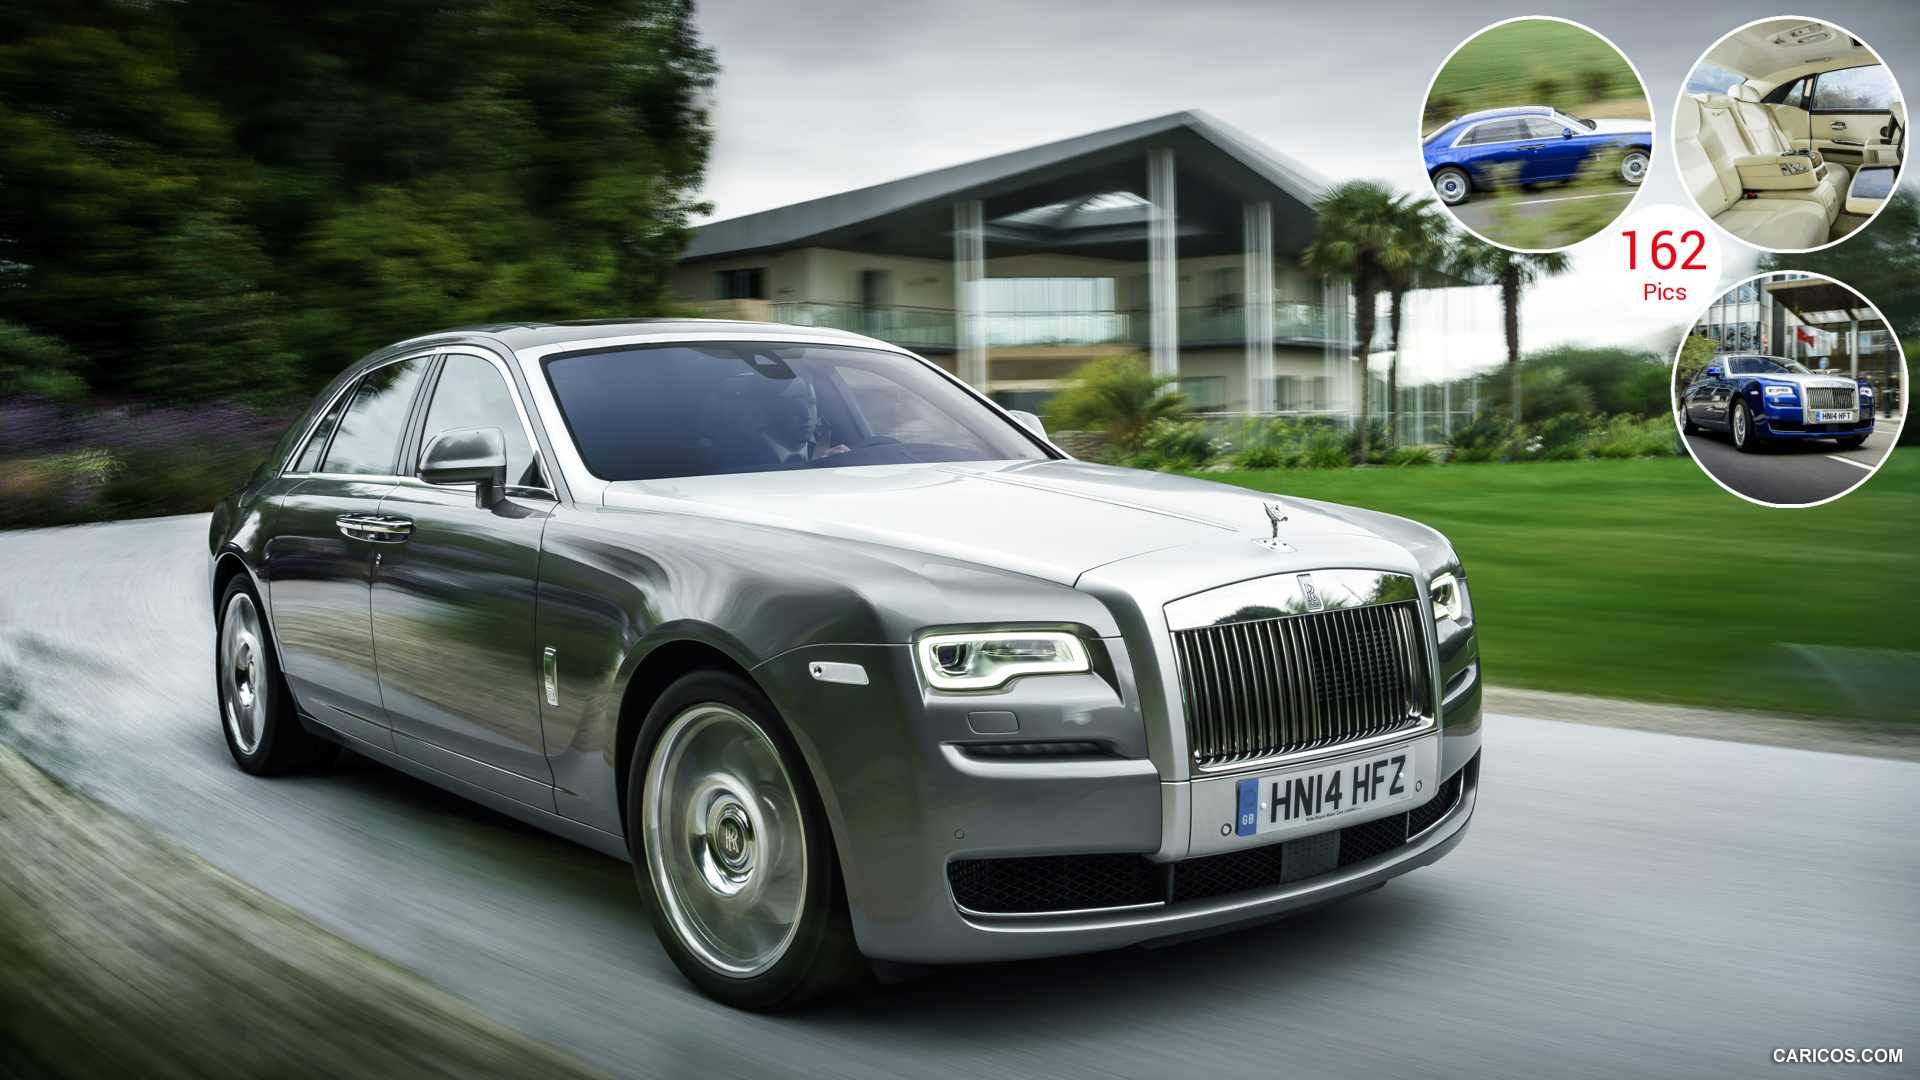 2015 Rolls-Royce Ghost Series II - Front | HD Wallpaper #1 | 1920x1080